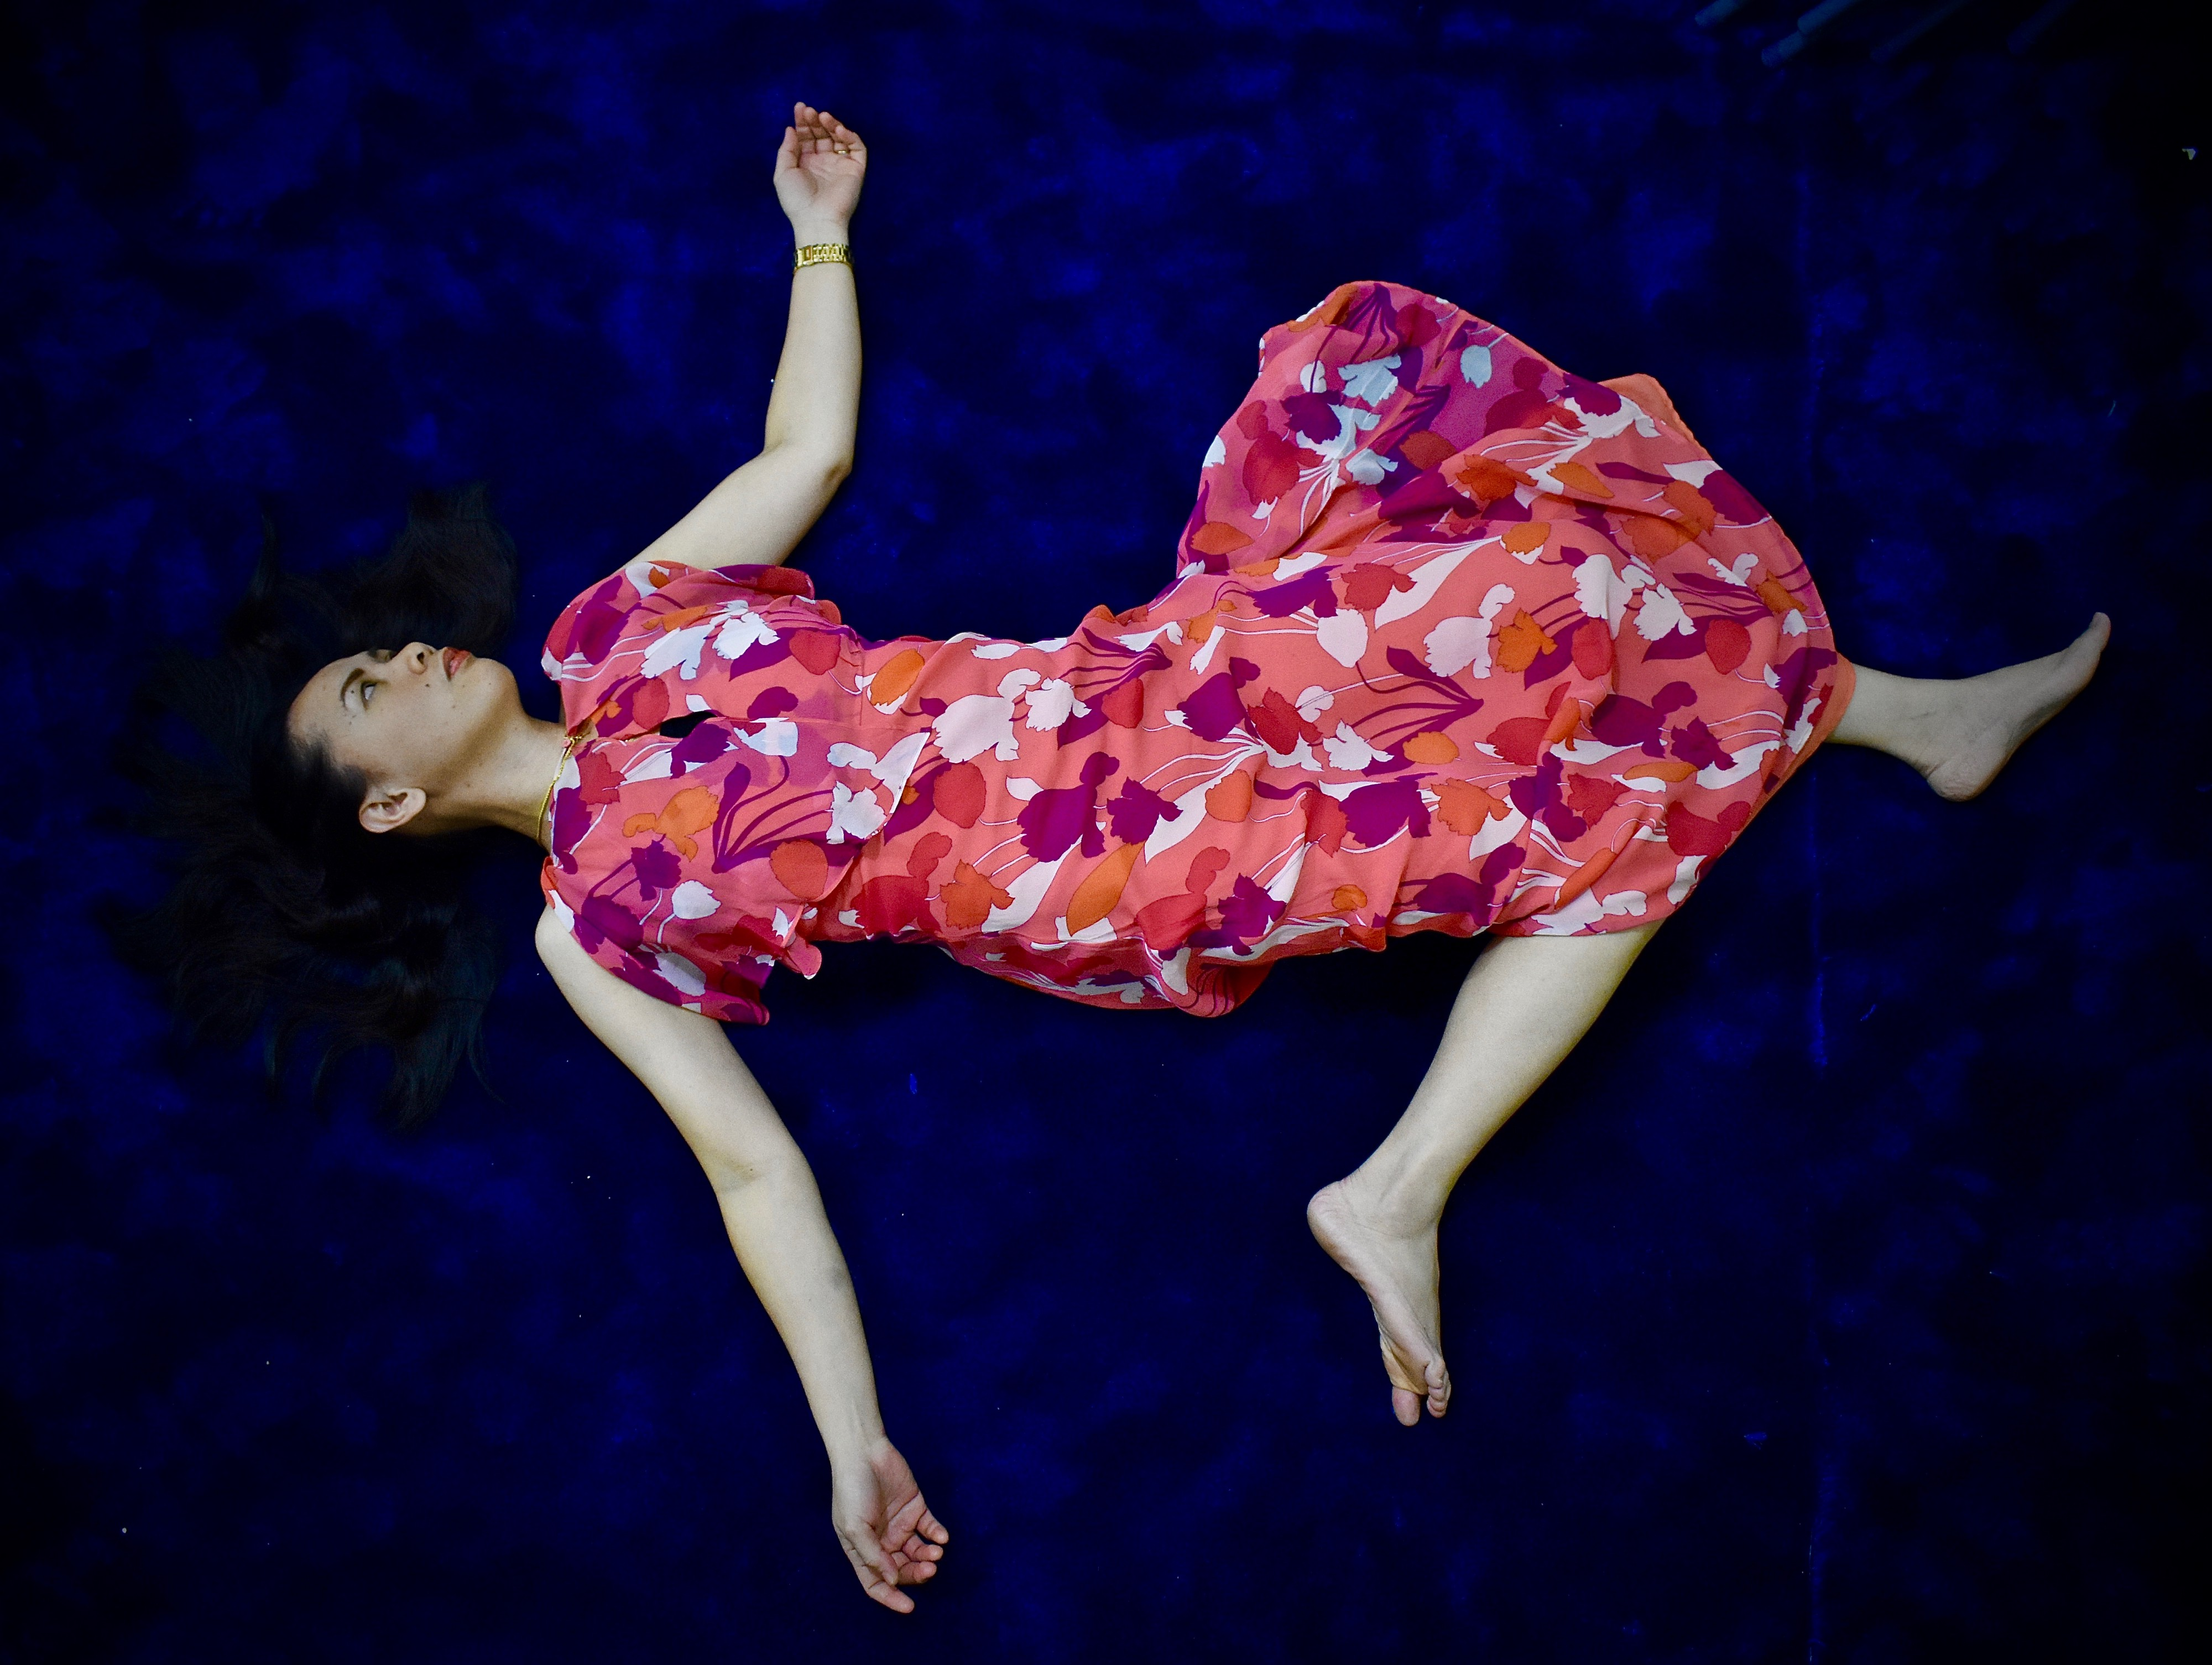 A bird's aye view of a woman in pink dress lying on the carpet